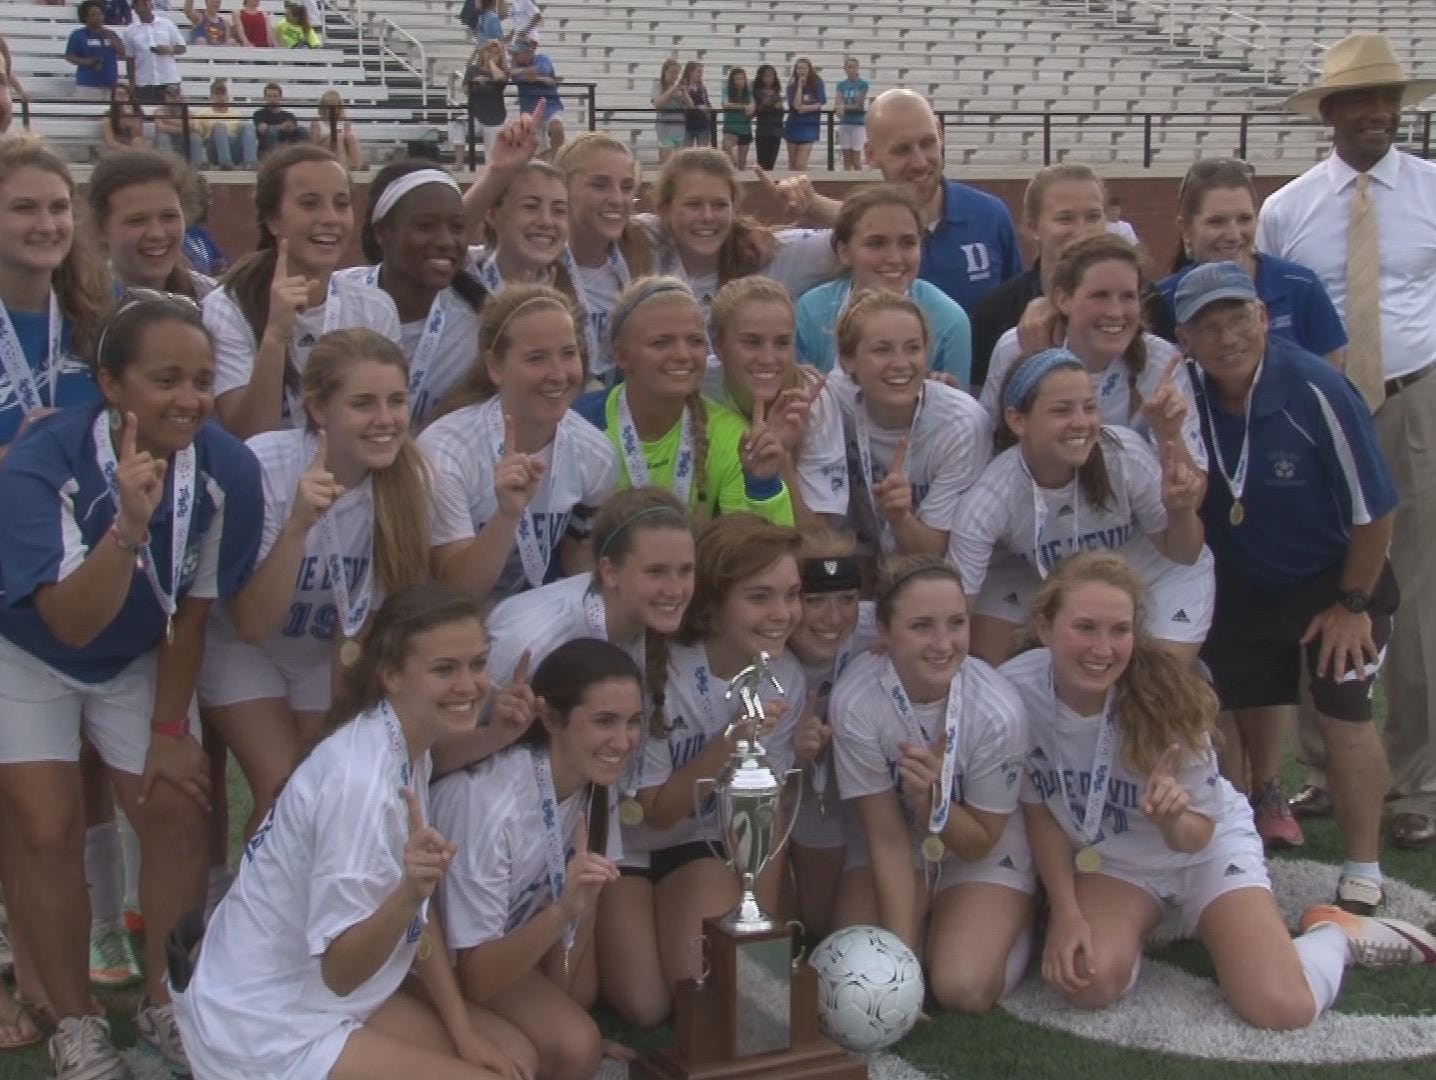 The Dreher girls soccer team poses with the state championship trophy after its 7-3 win over Hilton Head.